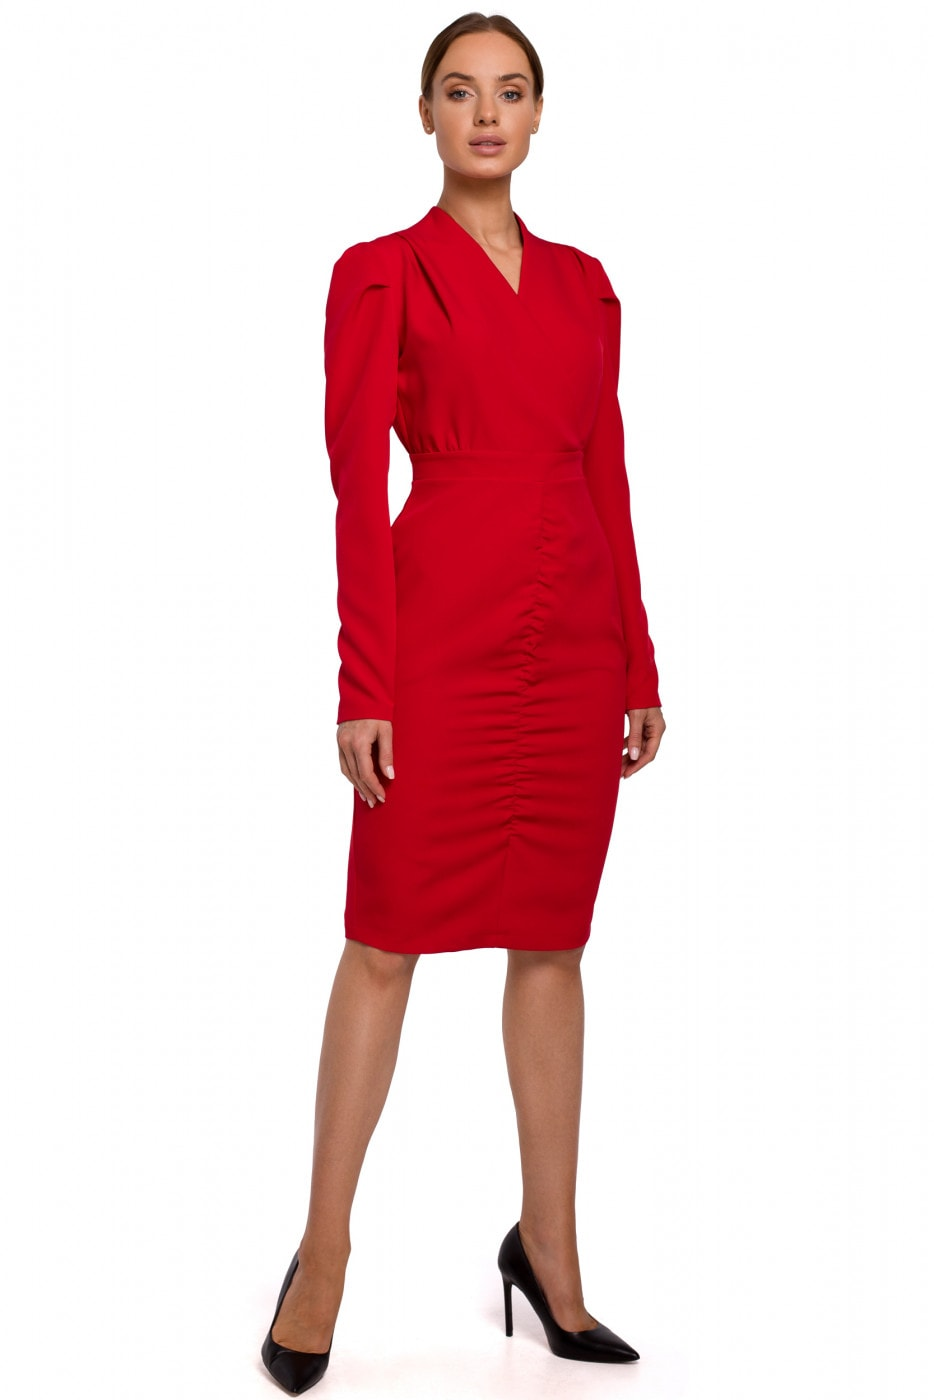 Made Of Emotion Woman's Dress M547